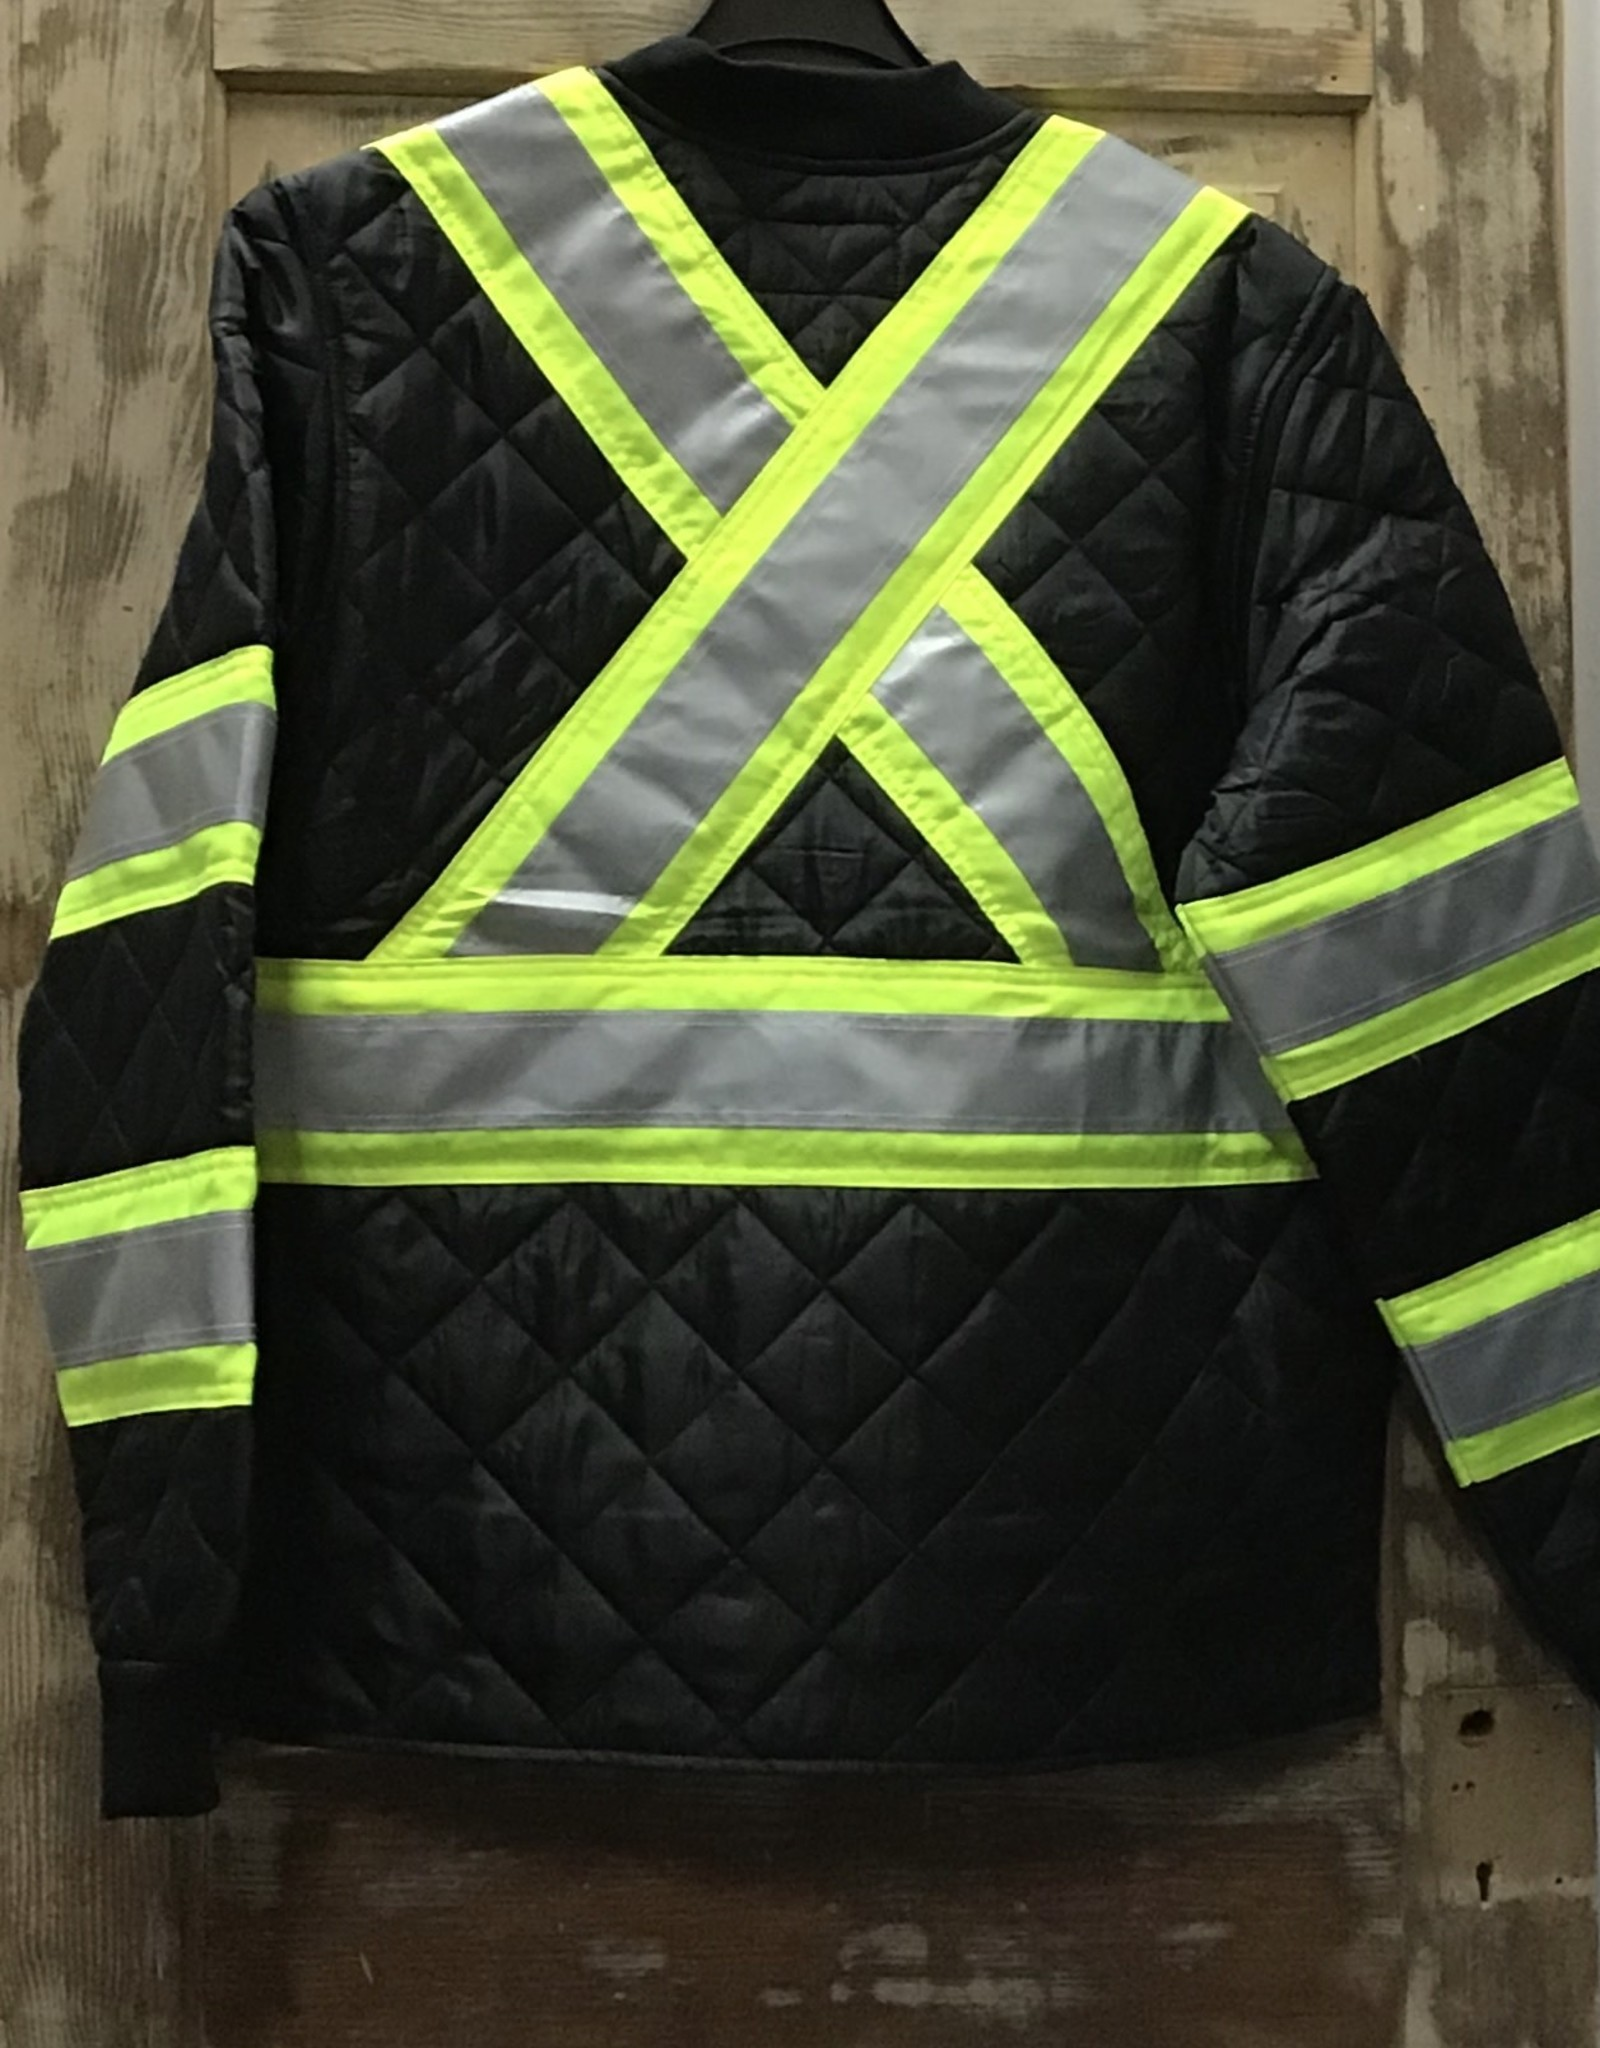 Work King Work King S432 Quilted Safety Jacket Men's